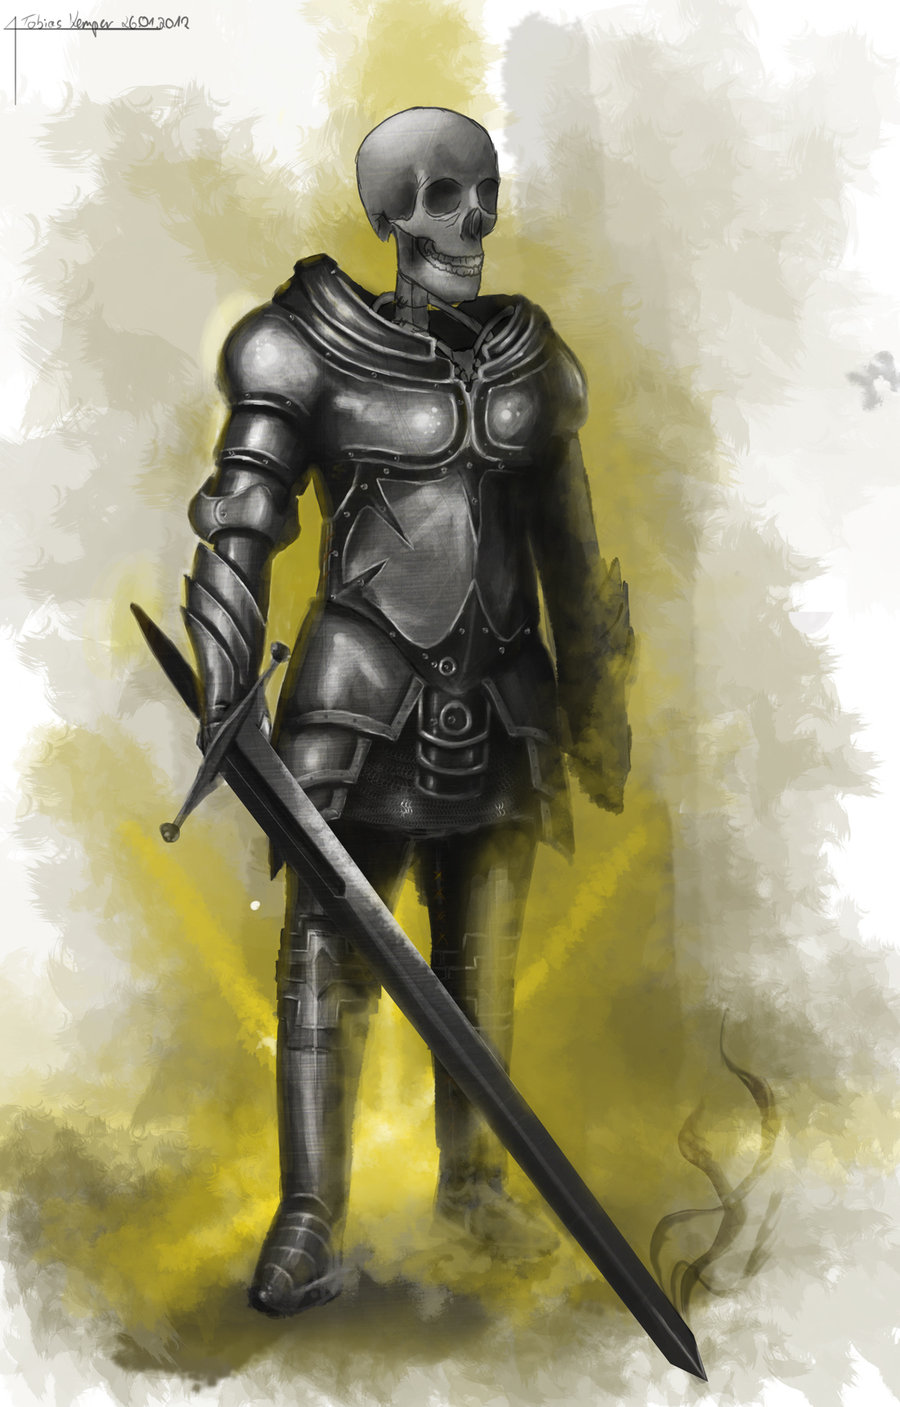 Drawn warrior skeleton knight Skeleton on by w1z0x knight